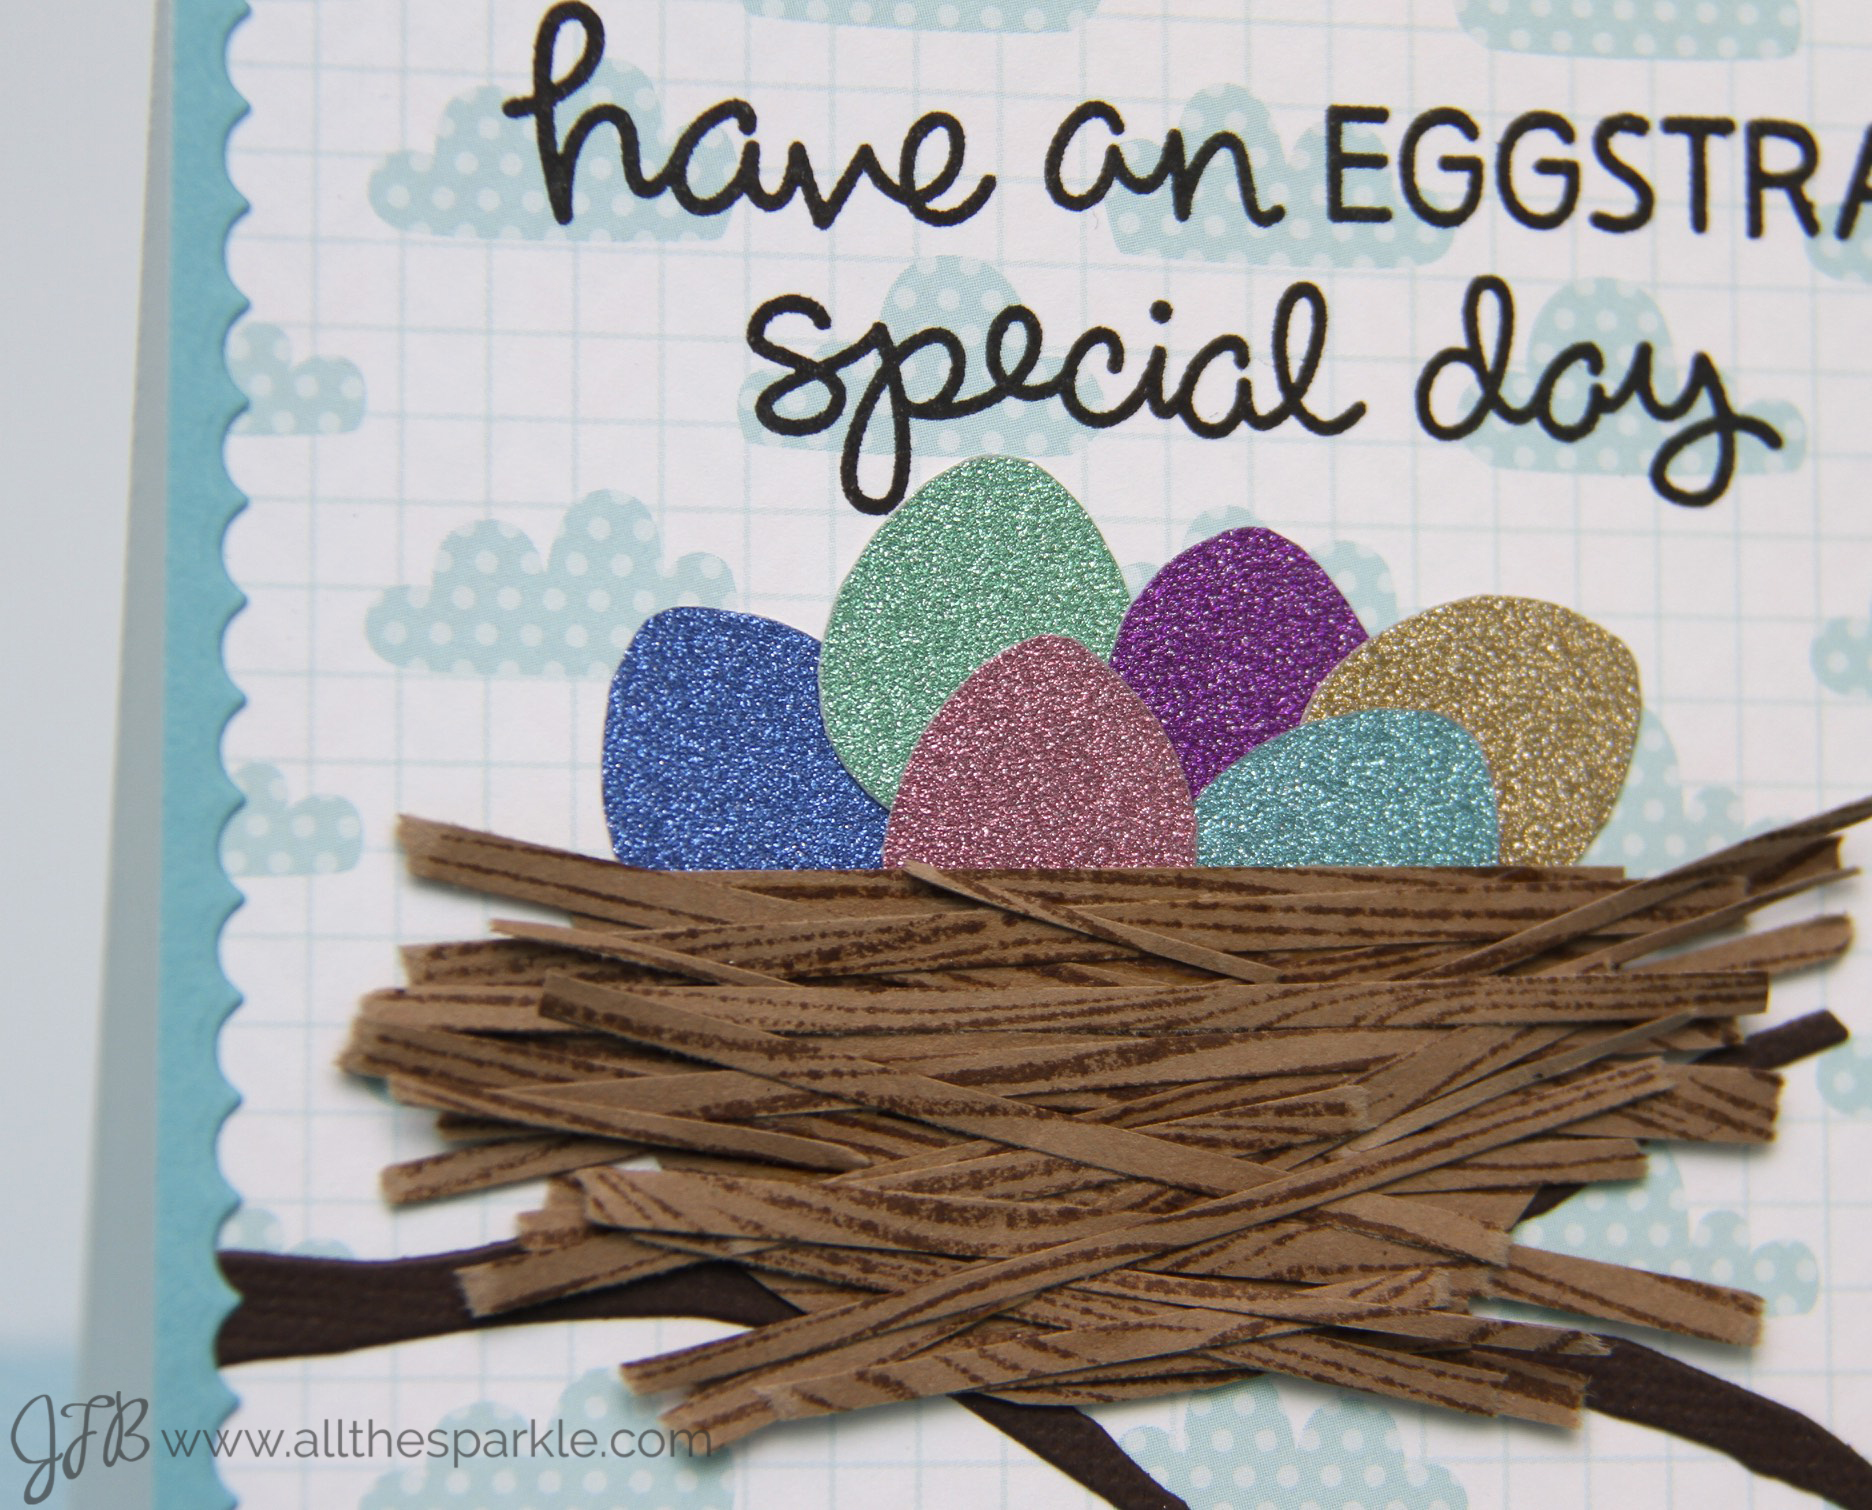 5 for 5 Easter: Day 4 and a giveaway!